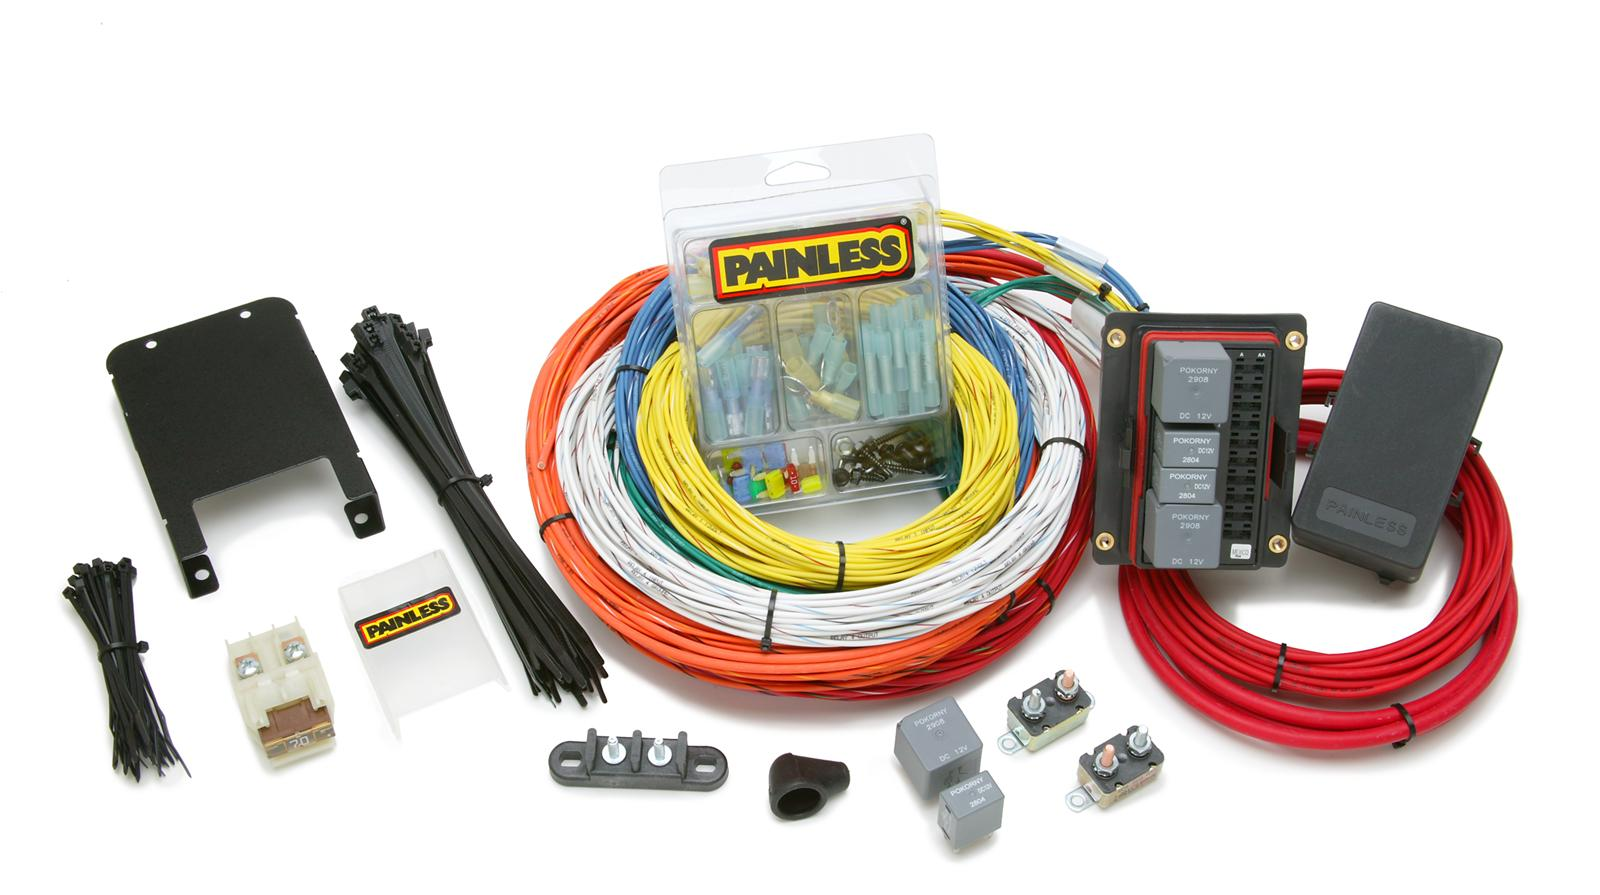 Painless Performance 15-Circuit Extreme Off-Road Harnesses 10144 - Free  Shipping on Orders Over $49 at Summit Racing